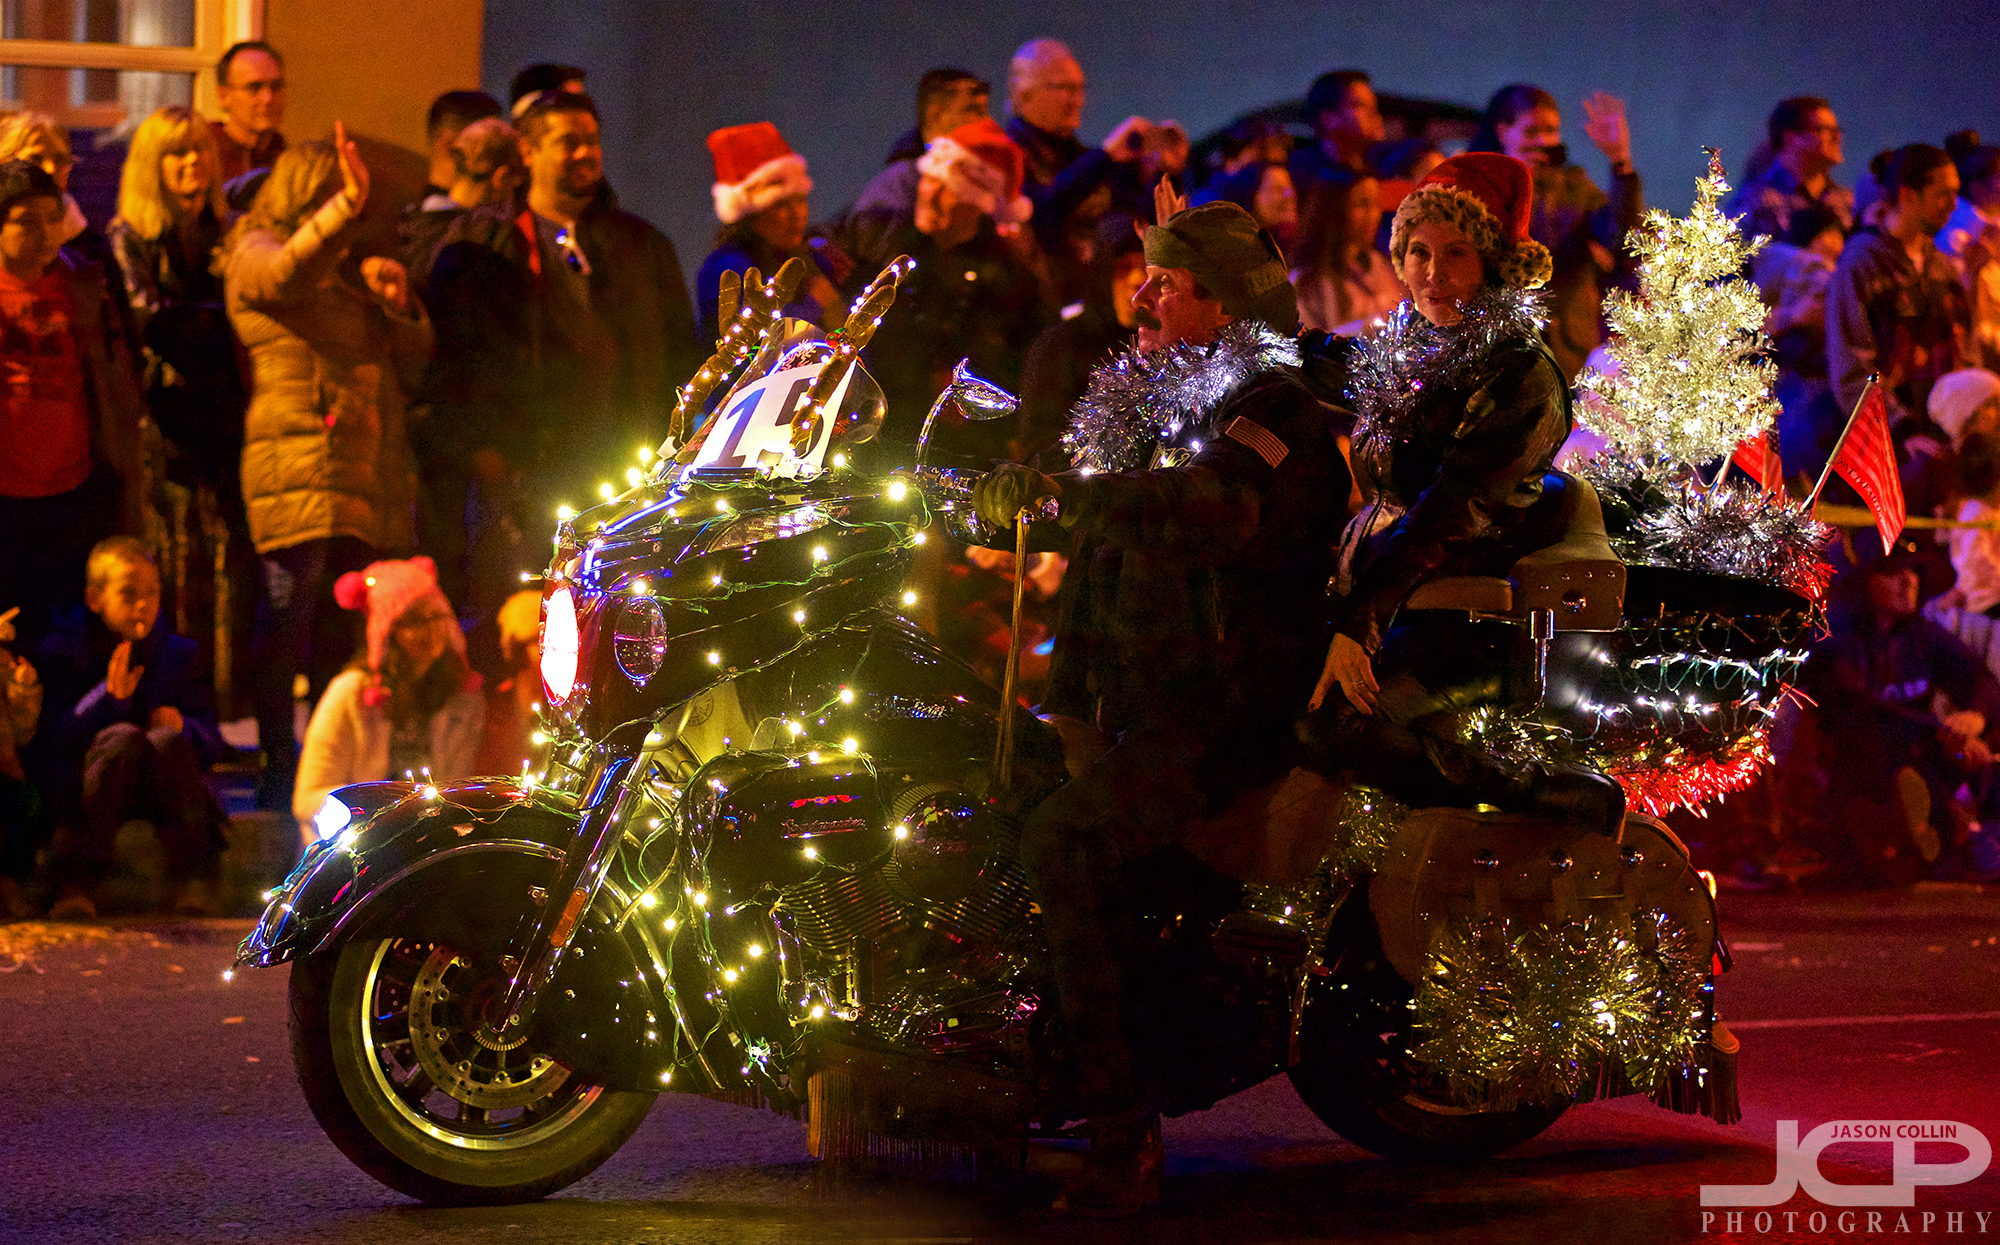 Even motorcycles got decked out for the Twinkle Parade, complete with Christmas Tree! - Nikon D750 with Nikkor 80-200mm @ f/2.8 1/200th ISO 4000